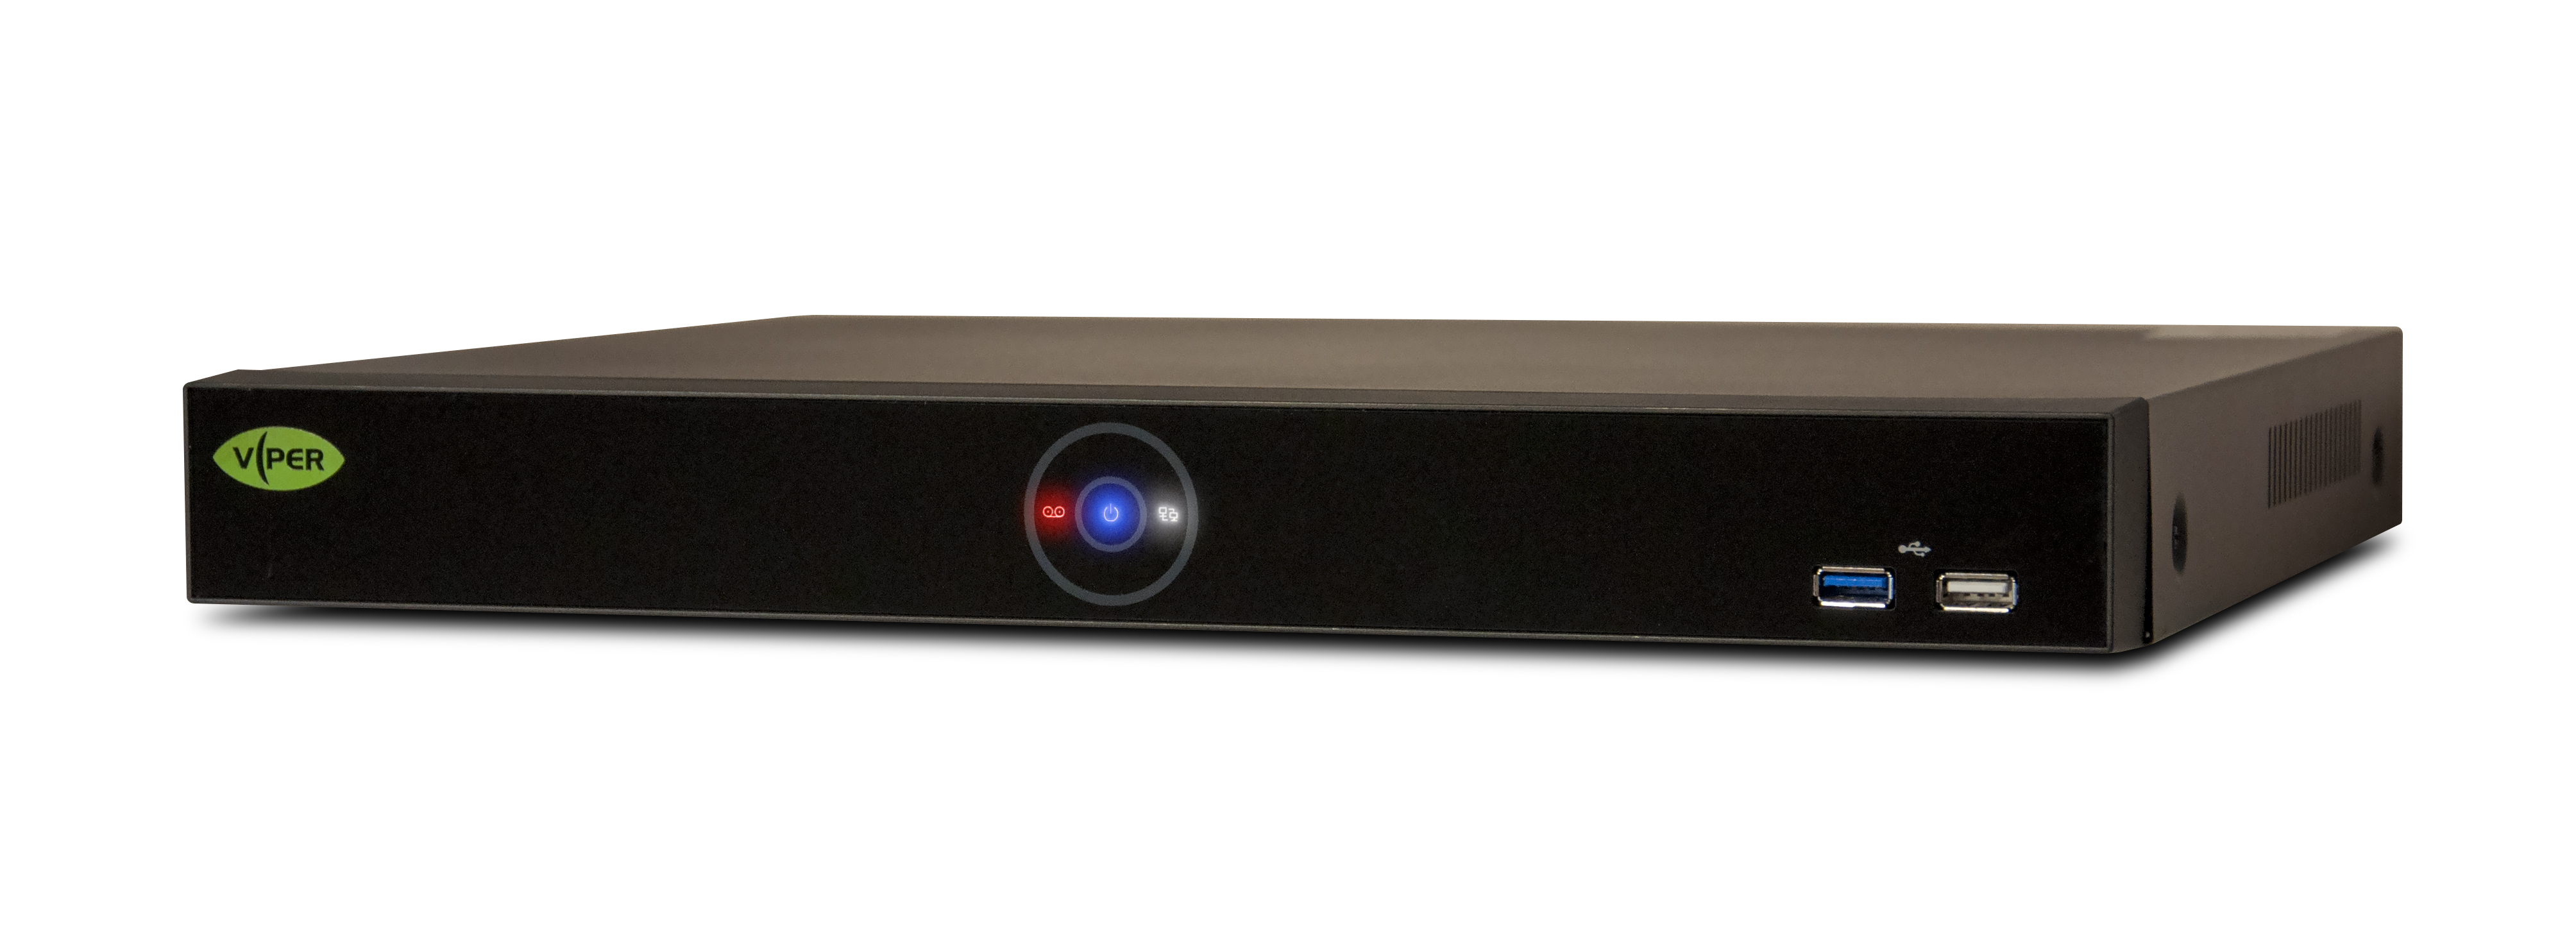 VIPER H.264 4 Channel NVR